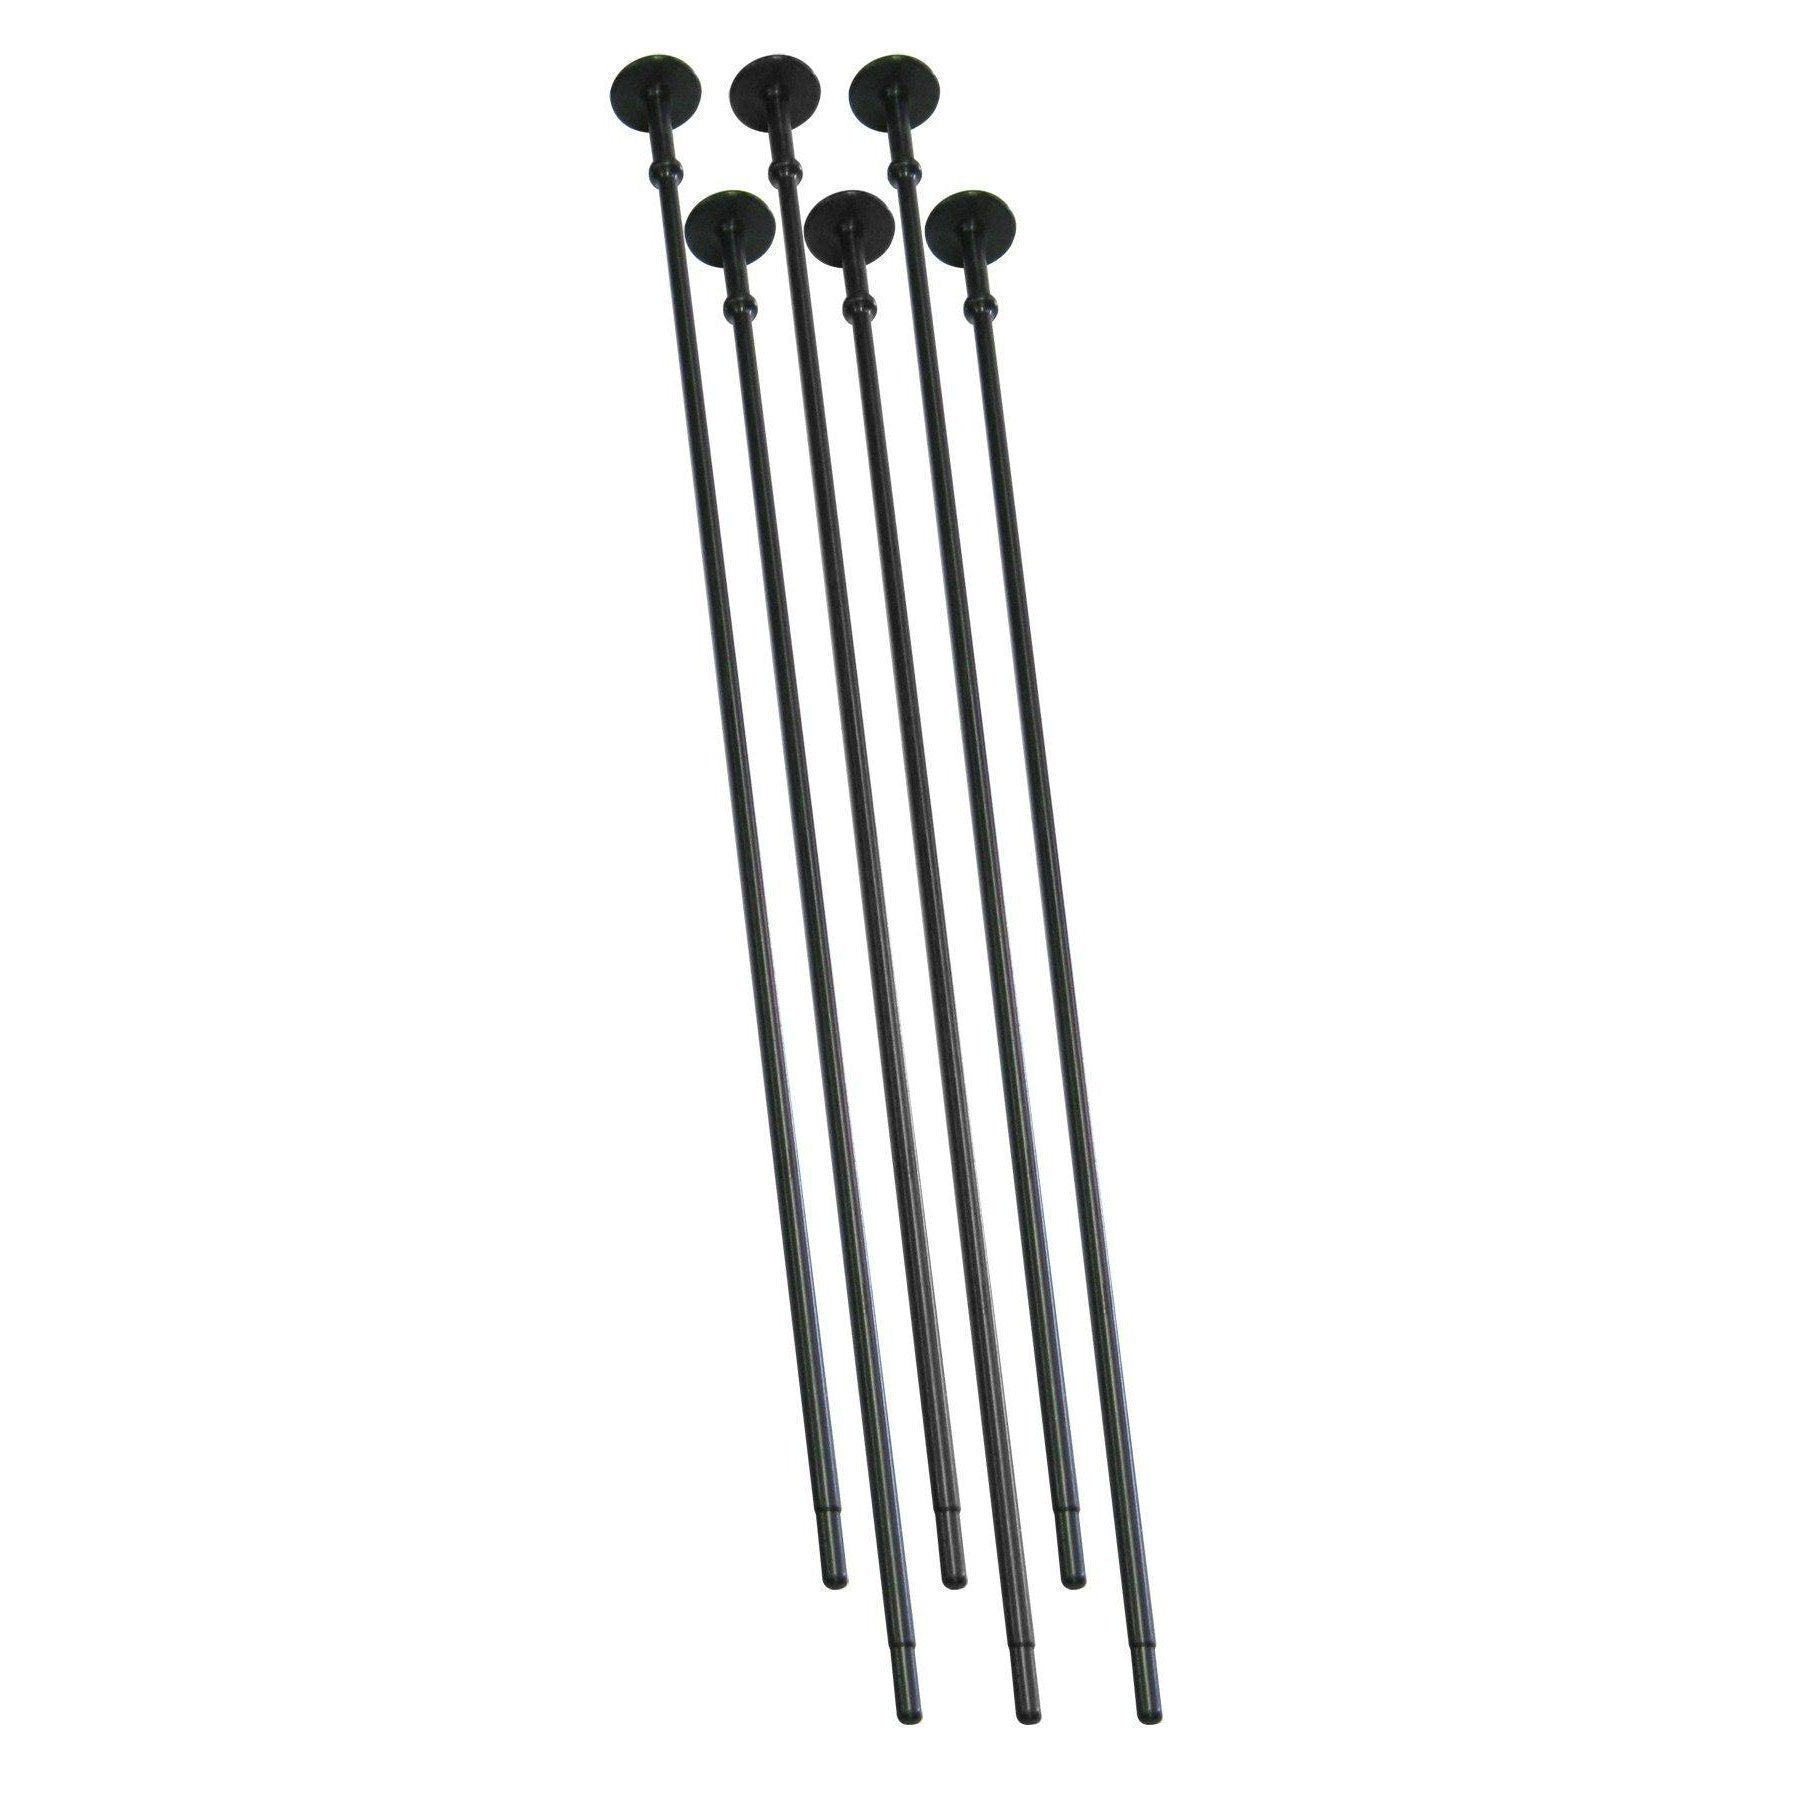 Accessory - Storage - Rifle Rod - 6 pack